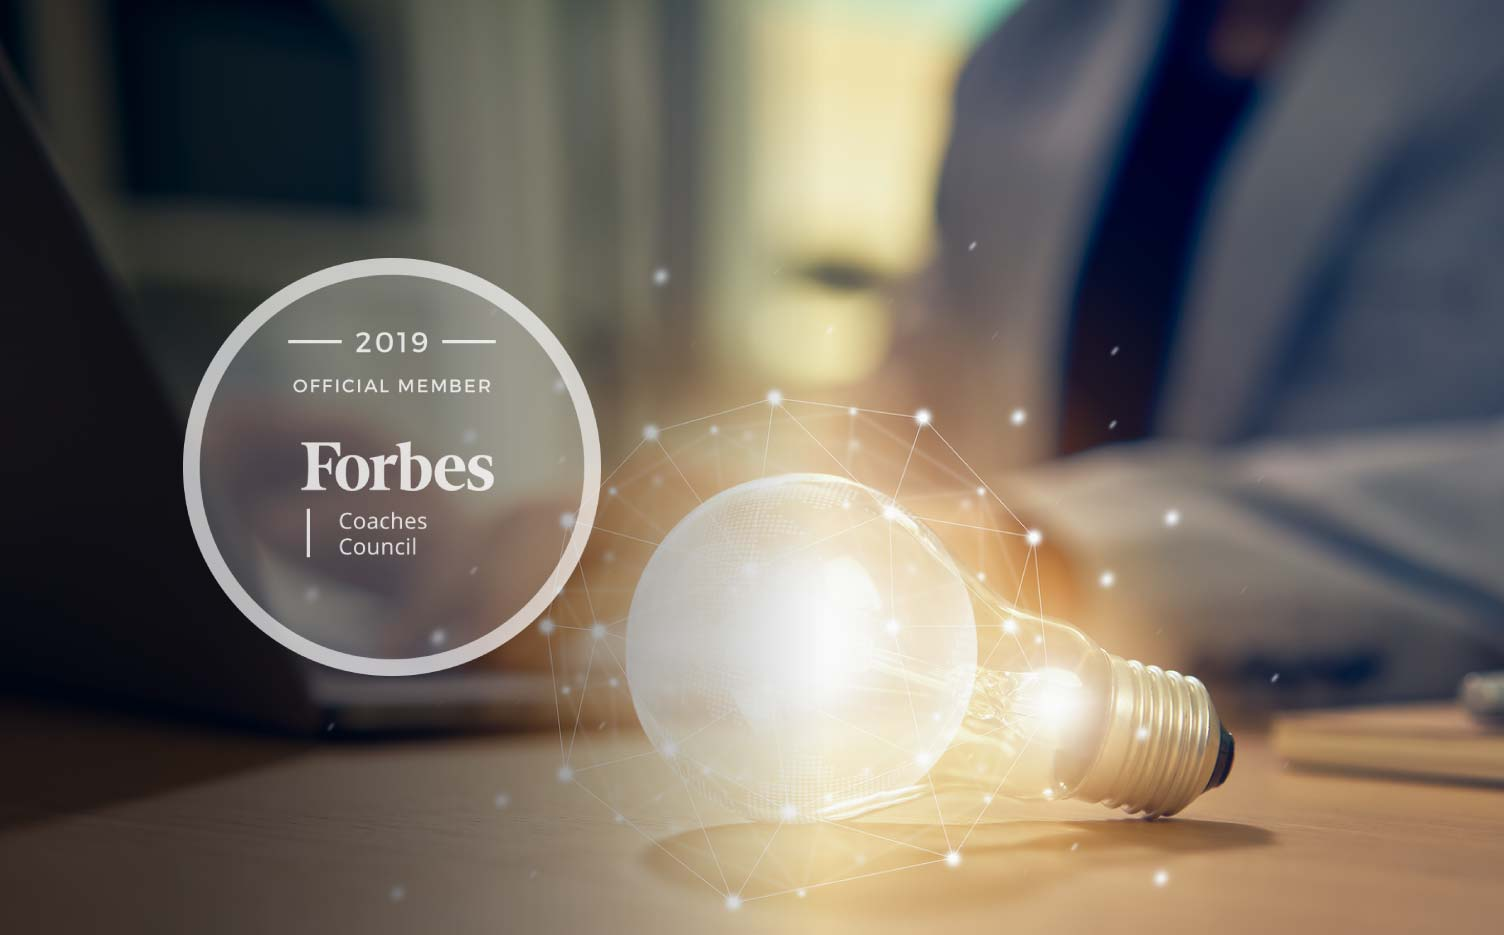 Jon Dwoskin Forbes Coaches Council Article: Adaptability Is The Key To Business Growth: Five Ways To Stay Ahead Of Real-Time